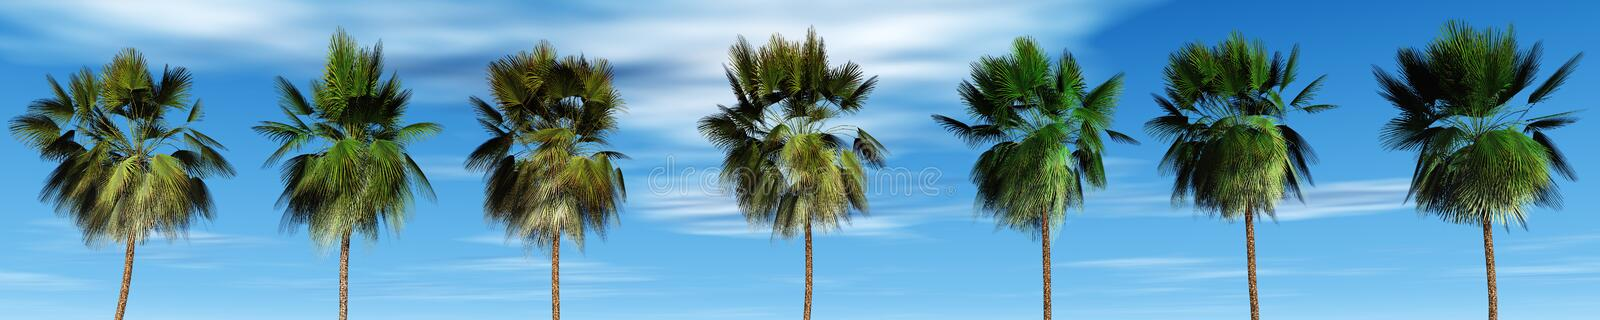 Mexican palm trees against the sky, tropical panorama. 3D rendering. panorama of palm trees royalty free stock photos